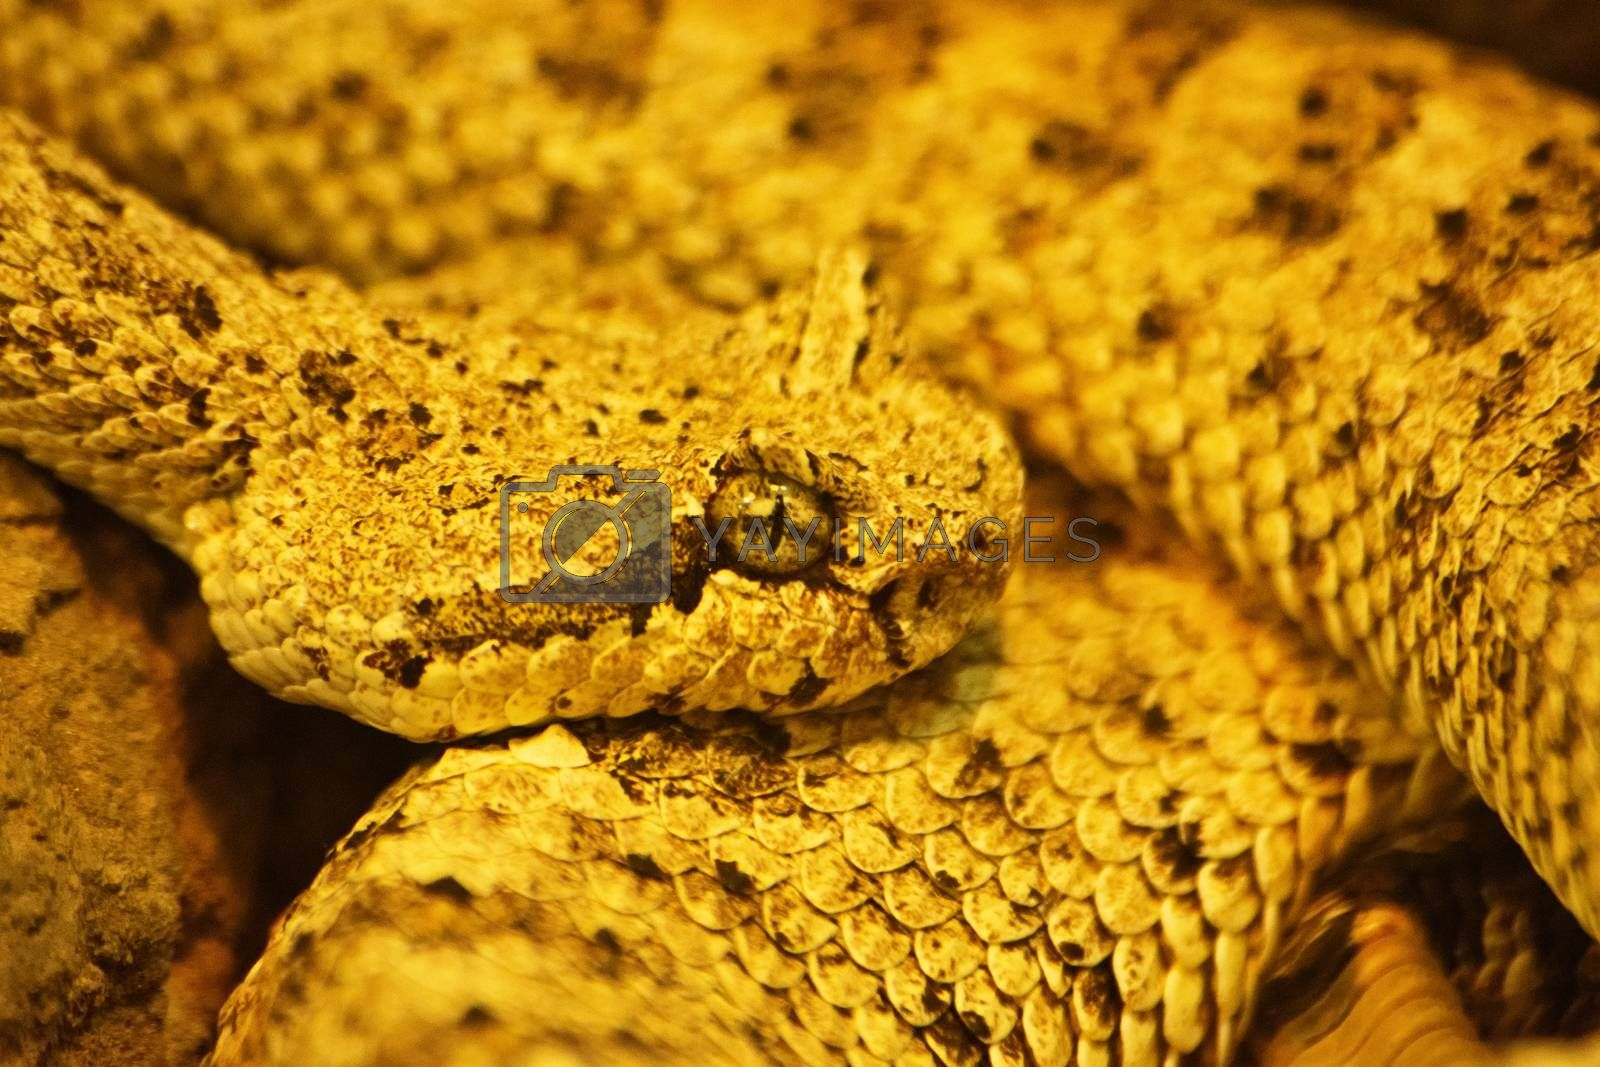 Close up shot of a curled up sidewinder (Crotalus cerastes), a venomous pitviper snake, also known as the horned rattlesnake and sidewinder rattlesnake. Species found in the desert regions of the southwestern United States and northwestern Mexico. Mesmerizing snake eye.